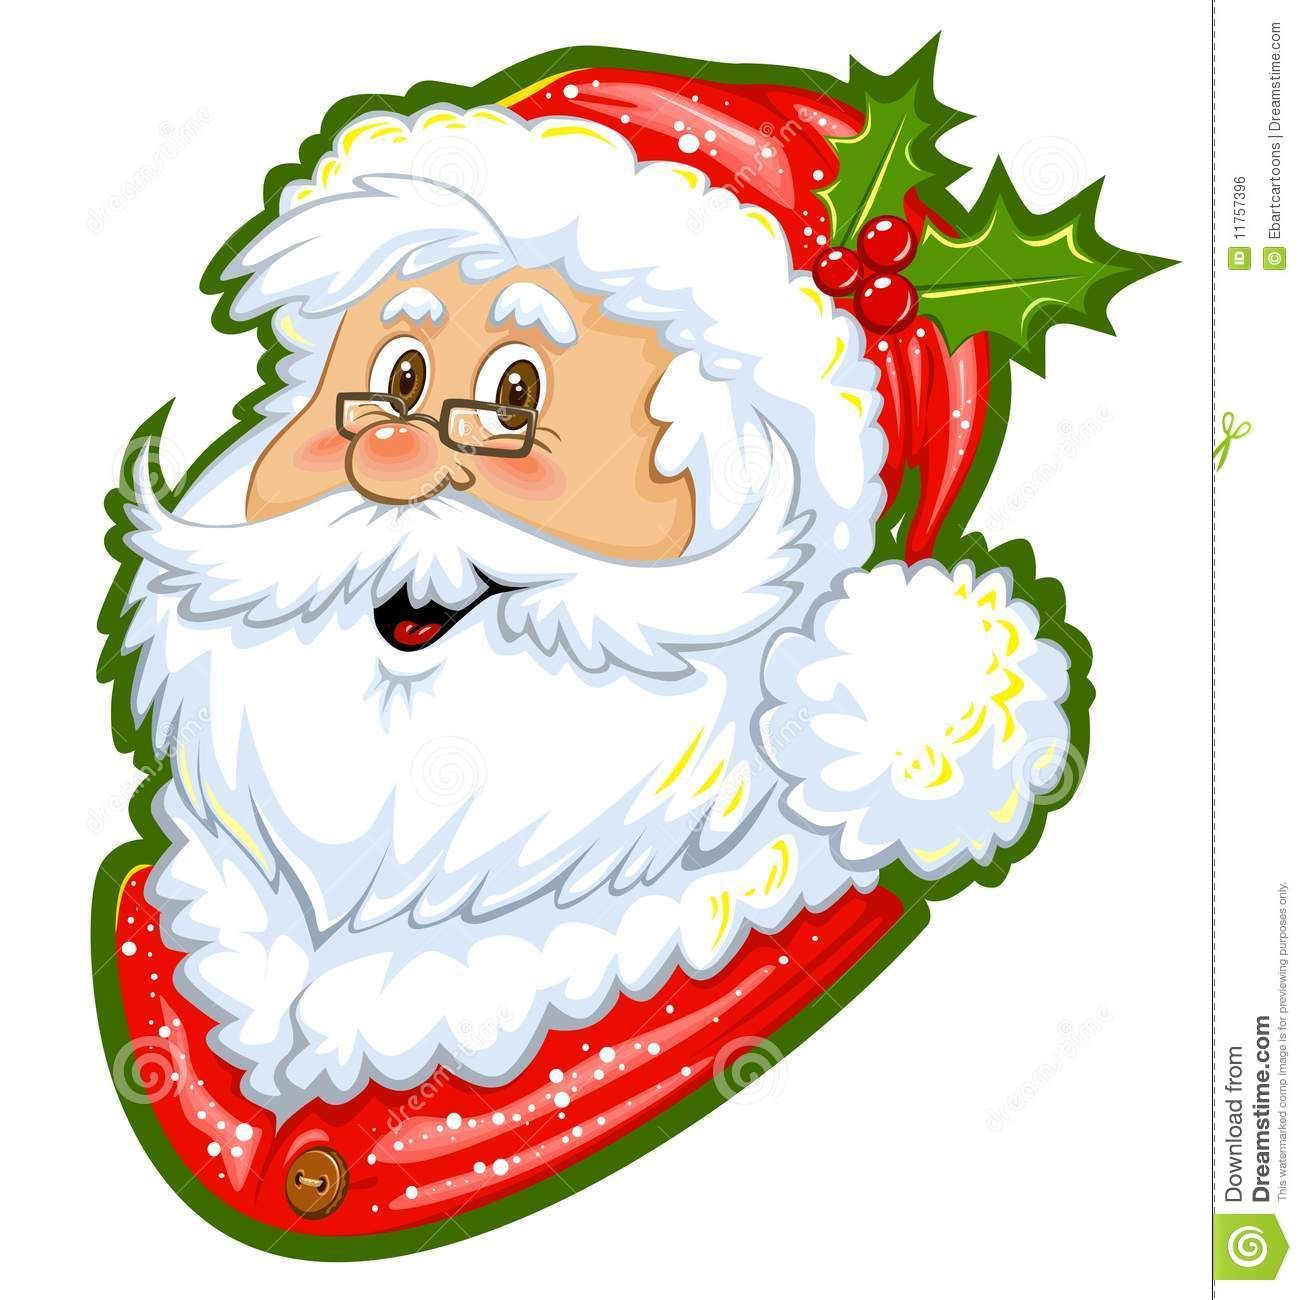 Santa Claus Color Clipart For Christmas Greeting Cards Description